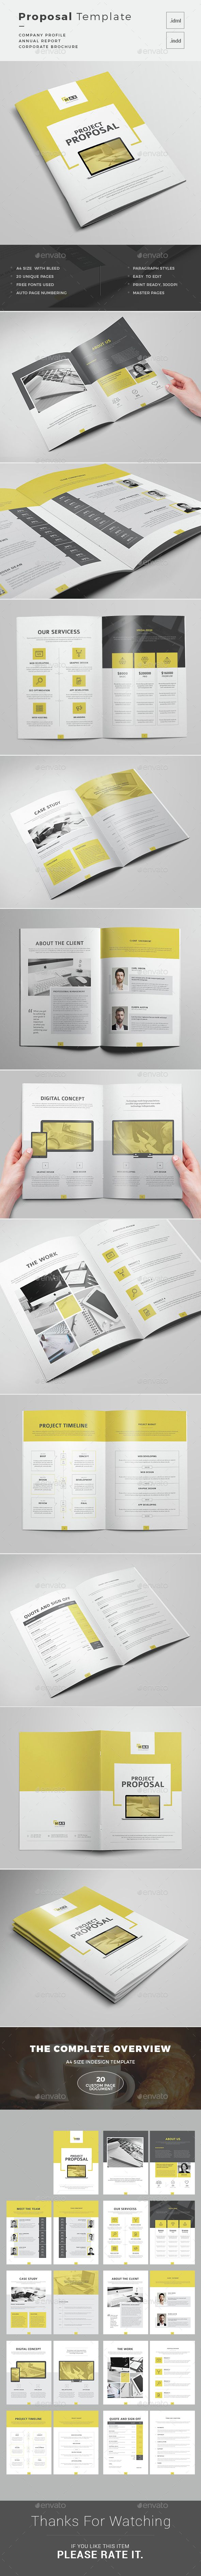 Proposal Word Indesign Brochure TemplatesBusiness 23